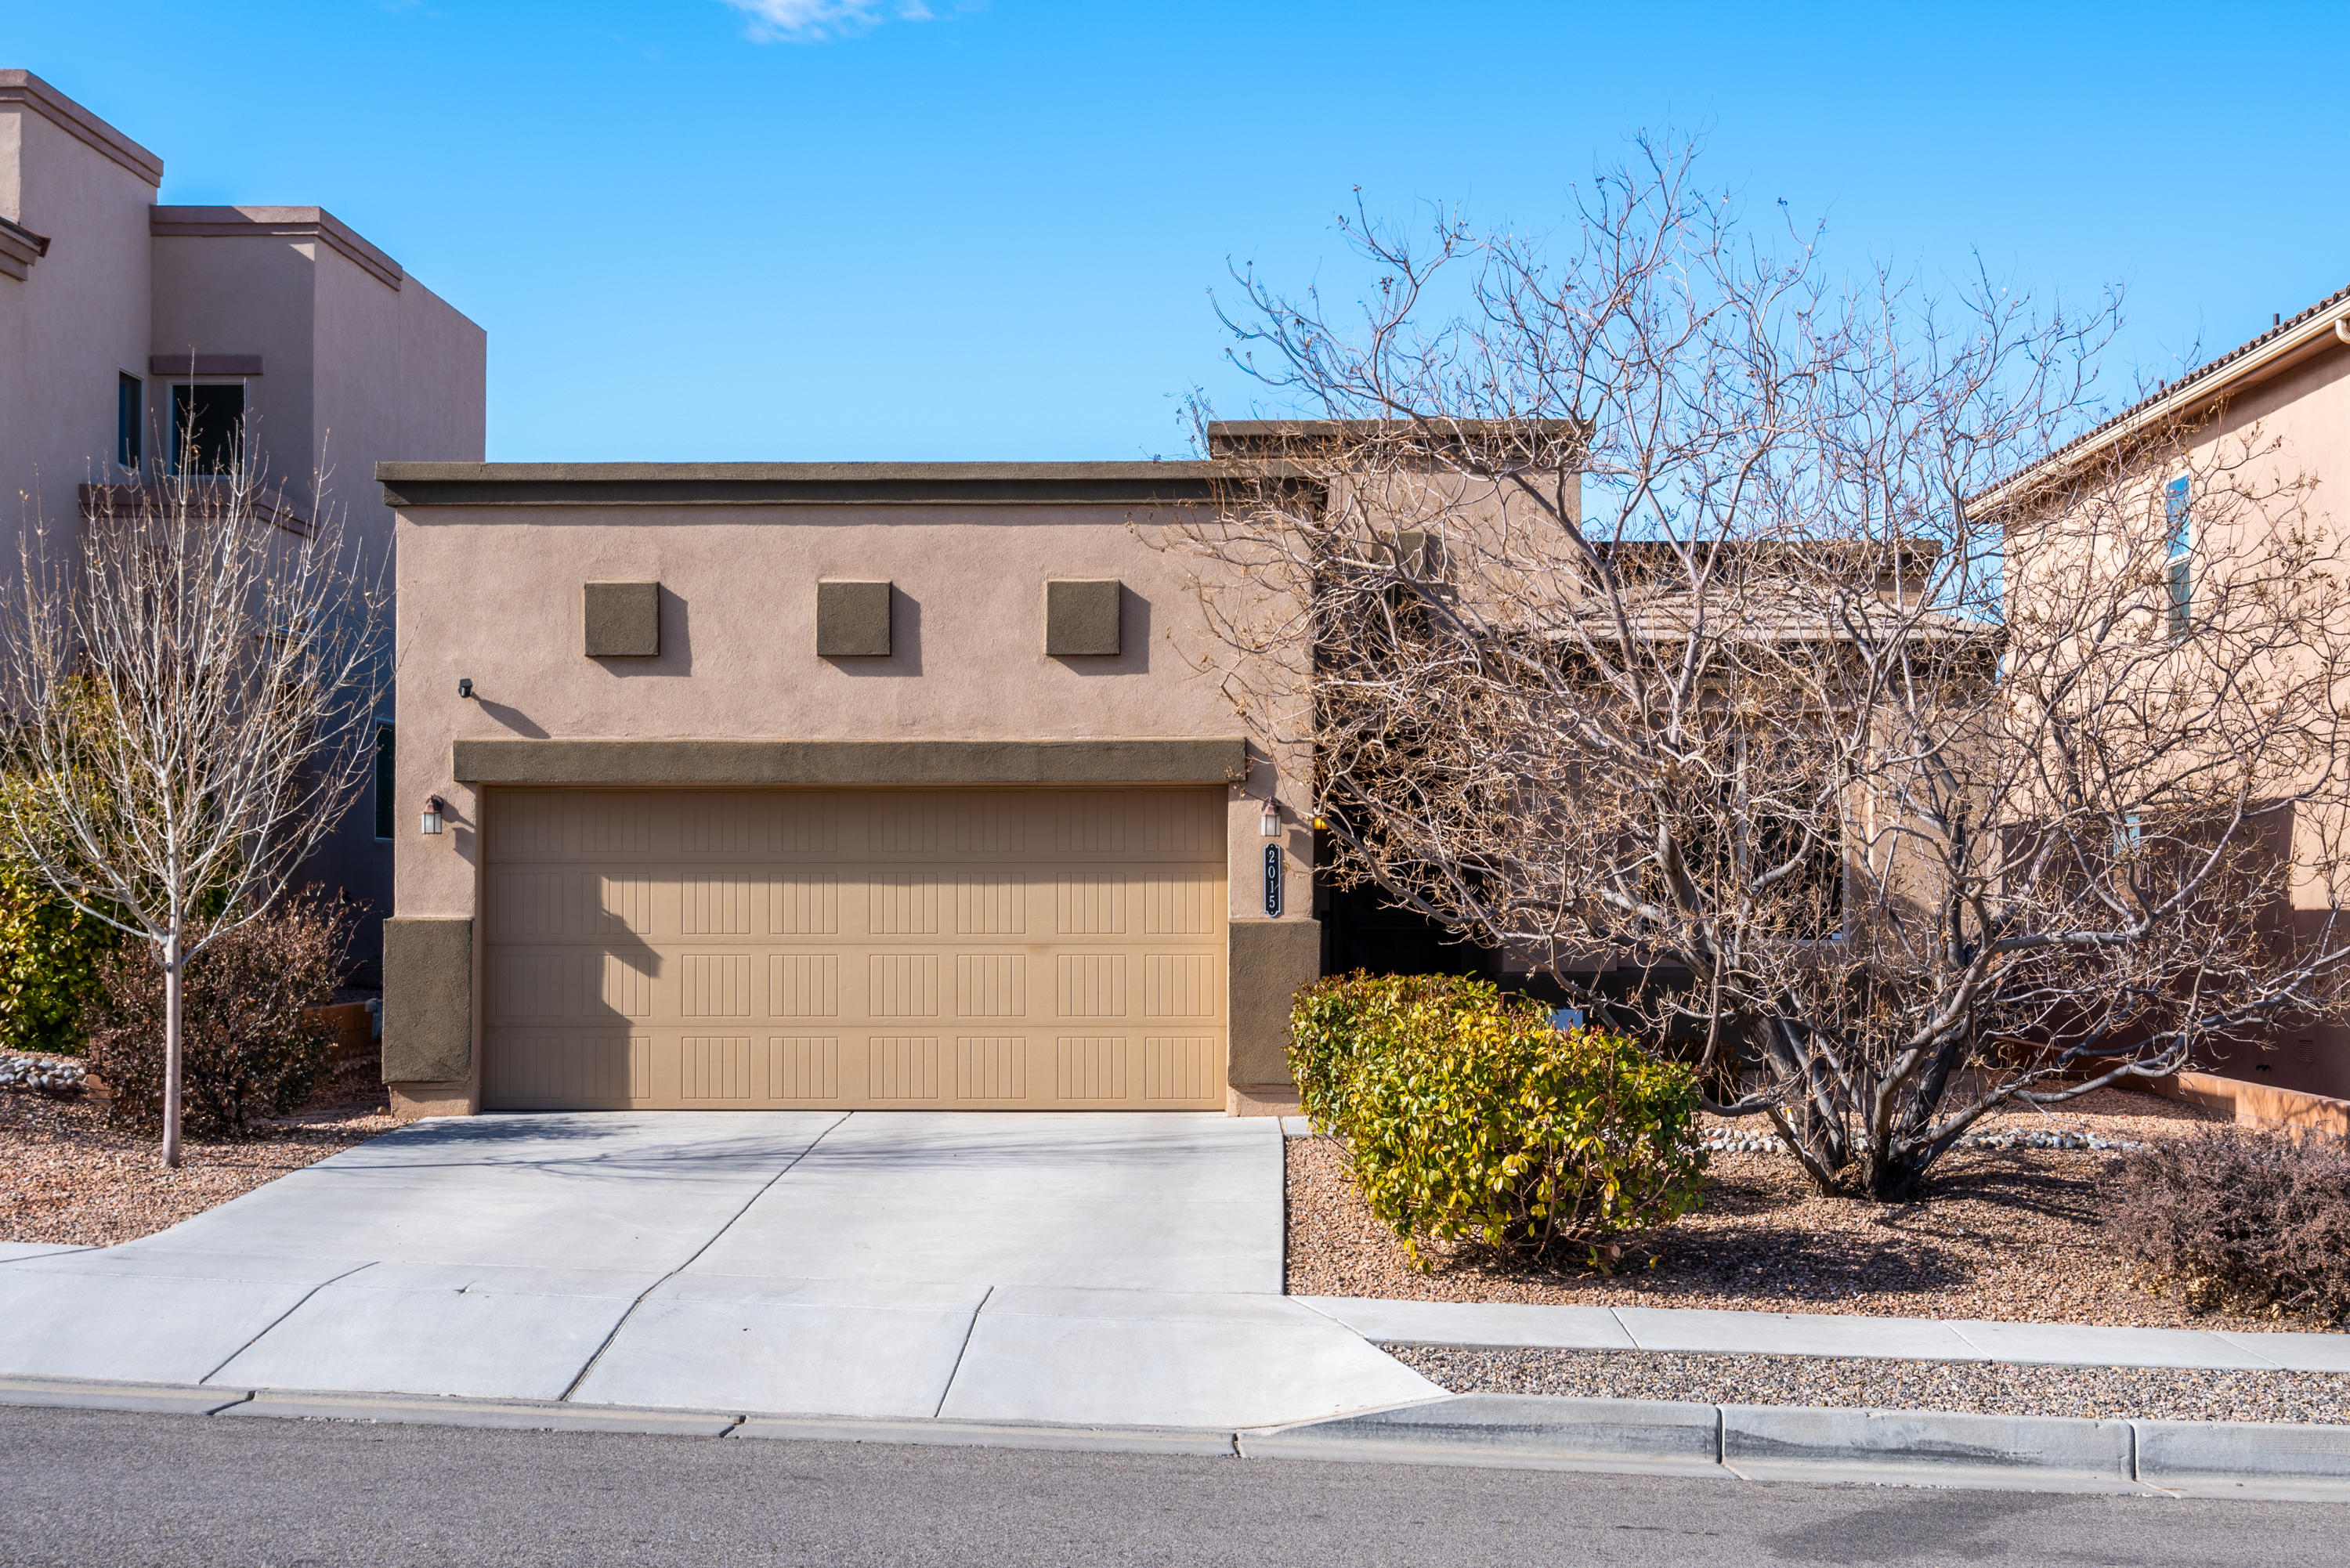 Well Maintained, DR Horton, Green Build NM Certified Home located in Volterra Village. Enjoy beautiful mountain views everyday from your front yard. This three bed, two bath, has it all!  Spacious kitchen with gas range, a pantry for storage, & plenty of counter space! The master is separate from the other two bedrooms, & has a large bathroom with extra storage & a large walk- in closet!  The Master bath has a large standing shower, a double vanity, and a water closet for privacy. Don't forget about the laundry room and two car garage! The Backyard is a Complete Low Maintenance Backyard with a beautiful NEW extended patio and, freshly laid turf, and the rest of the yard is xeriscaped w/ Flagstone. Schedule an appointment today, you won't want to miss this one!WASHER & DRYER DO NOT CONVEY